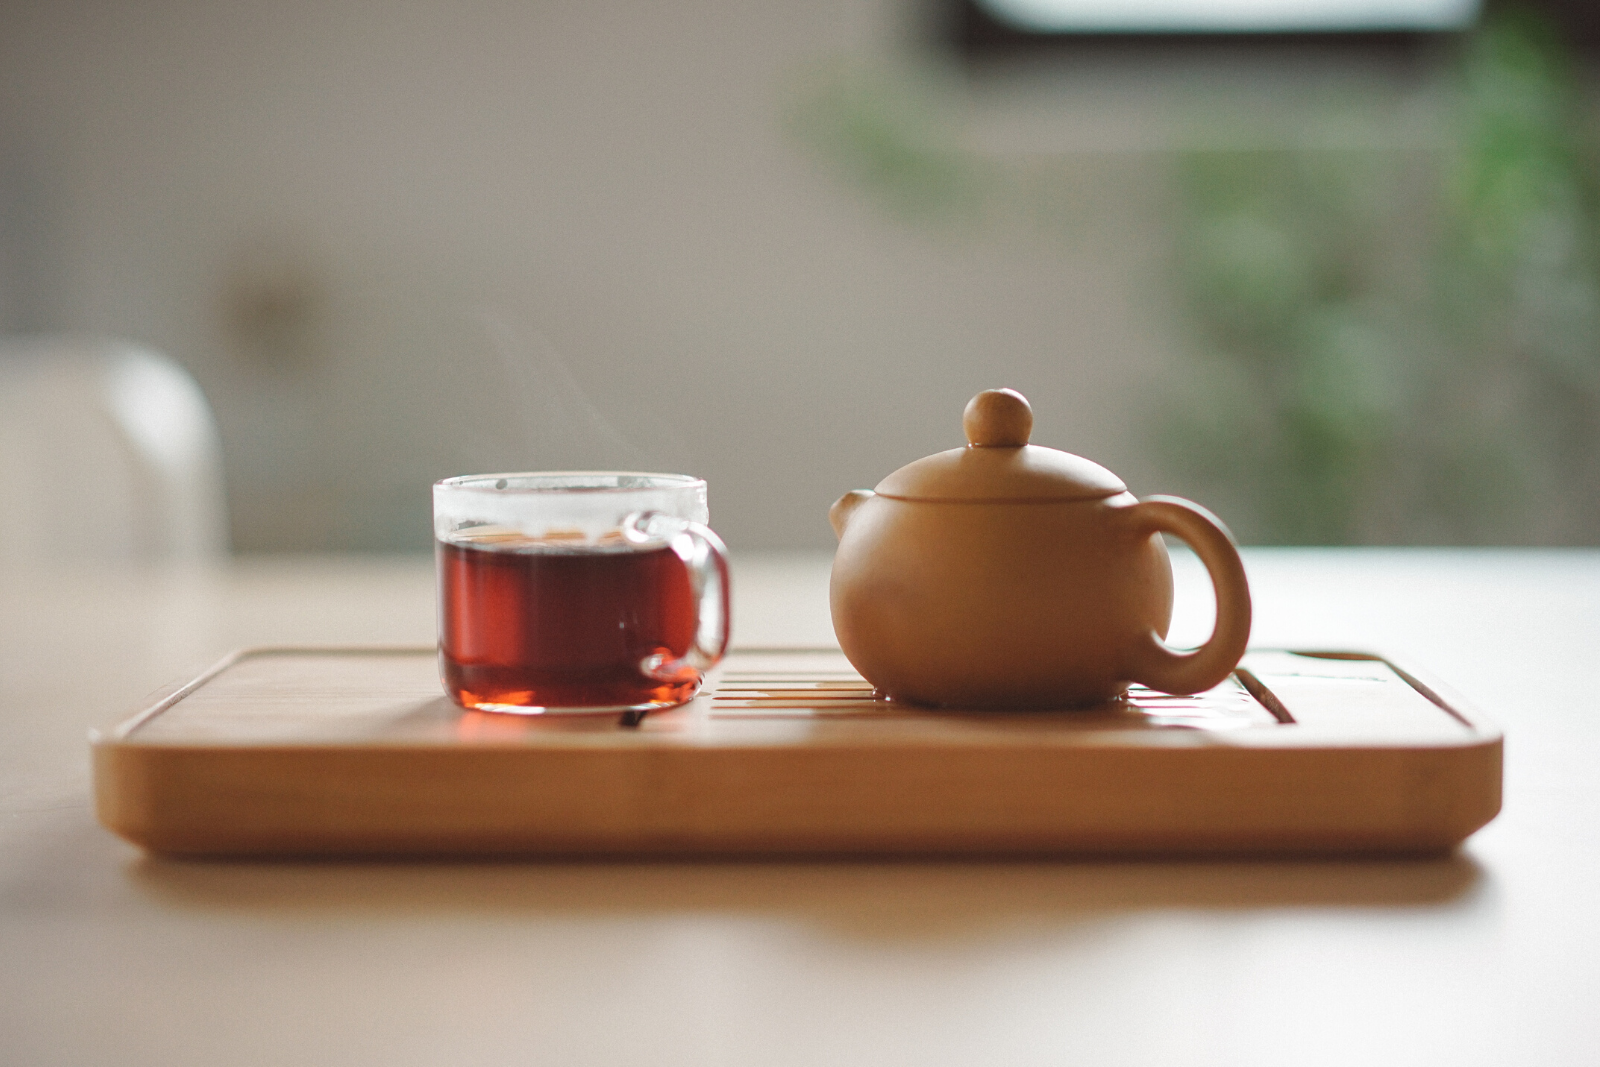 Tea Cup and Tea Pot | Tea For Every Mood: Can Tea Affect Your State Of Mind?